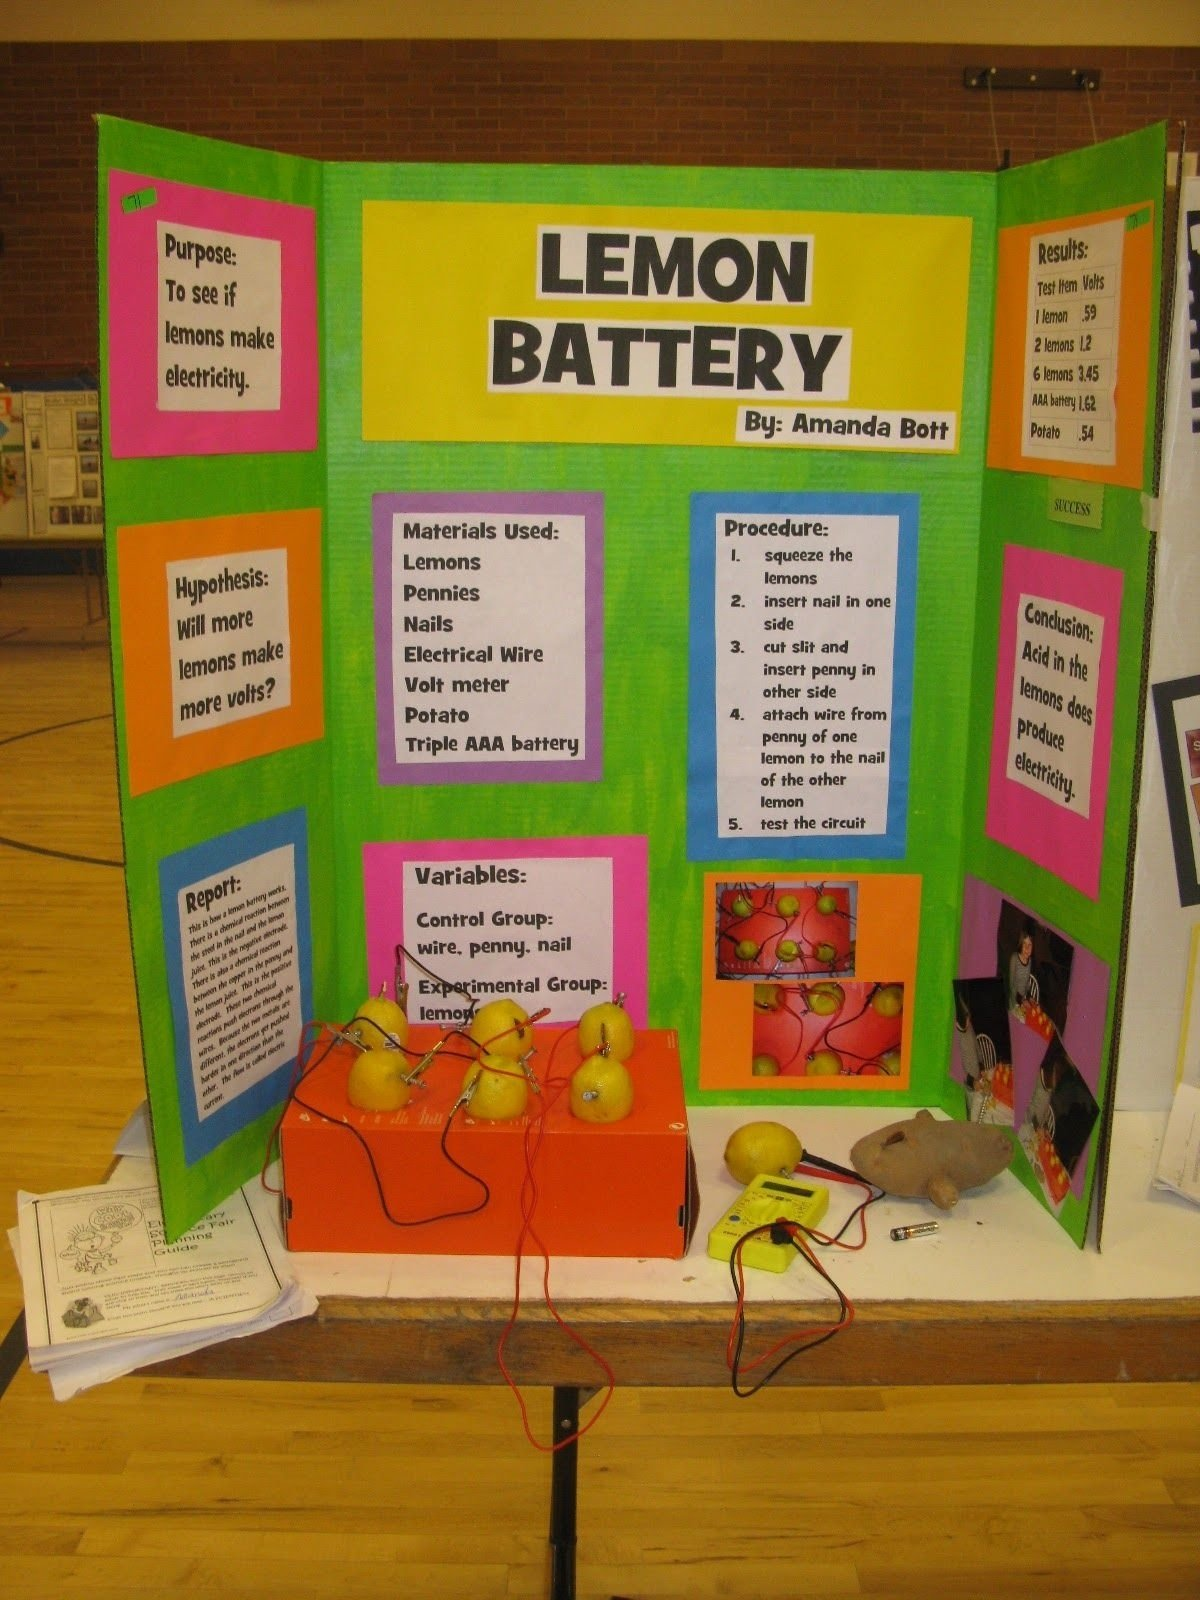 10 Attractive Science Project Ideas For 4Th Graders the science of my life updated declo science fair with newspaper 27 2020